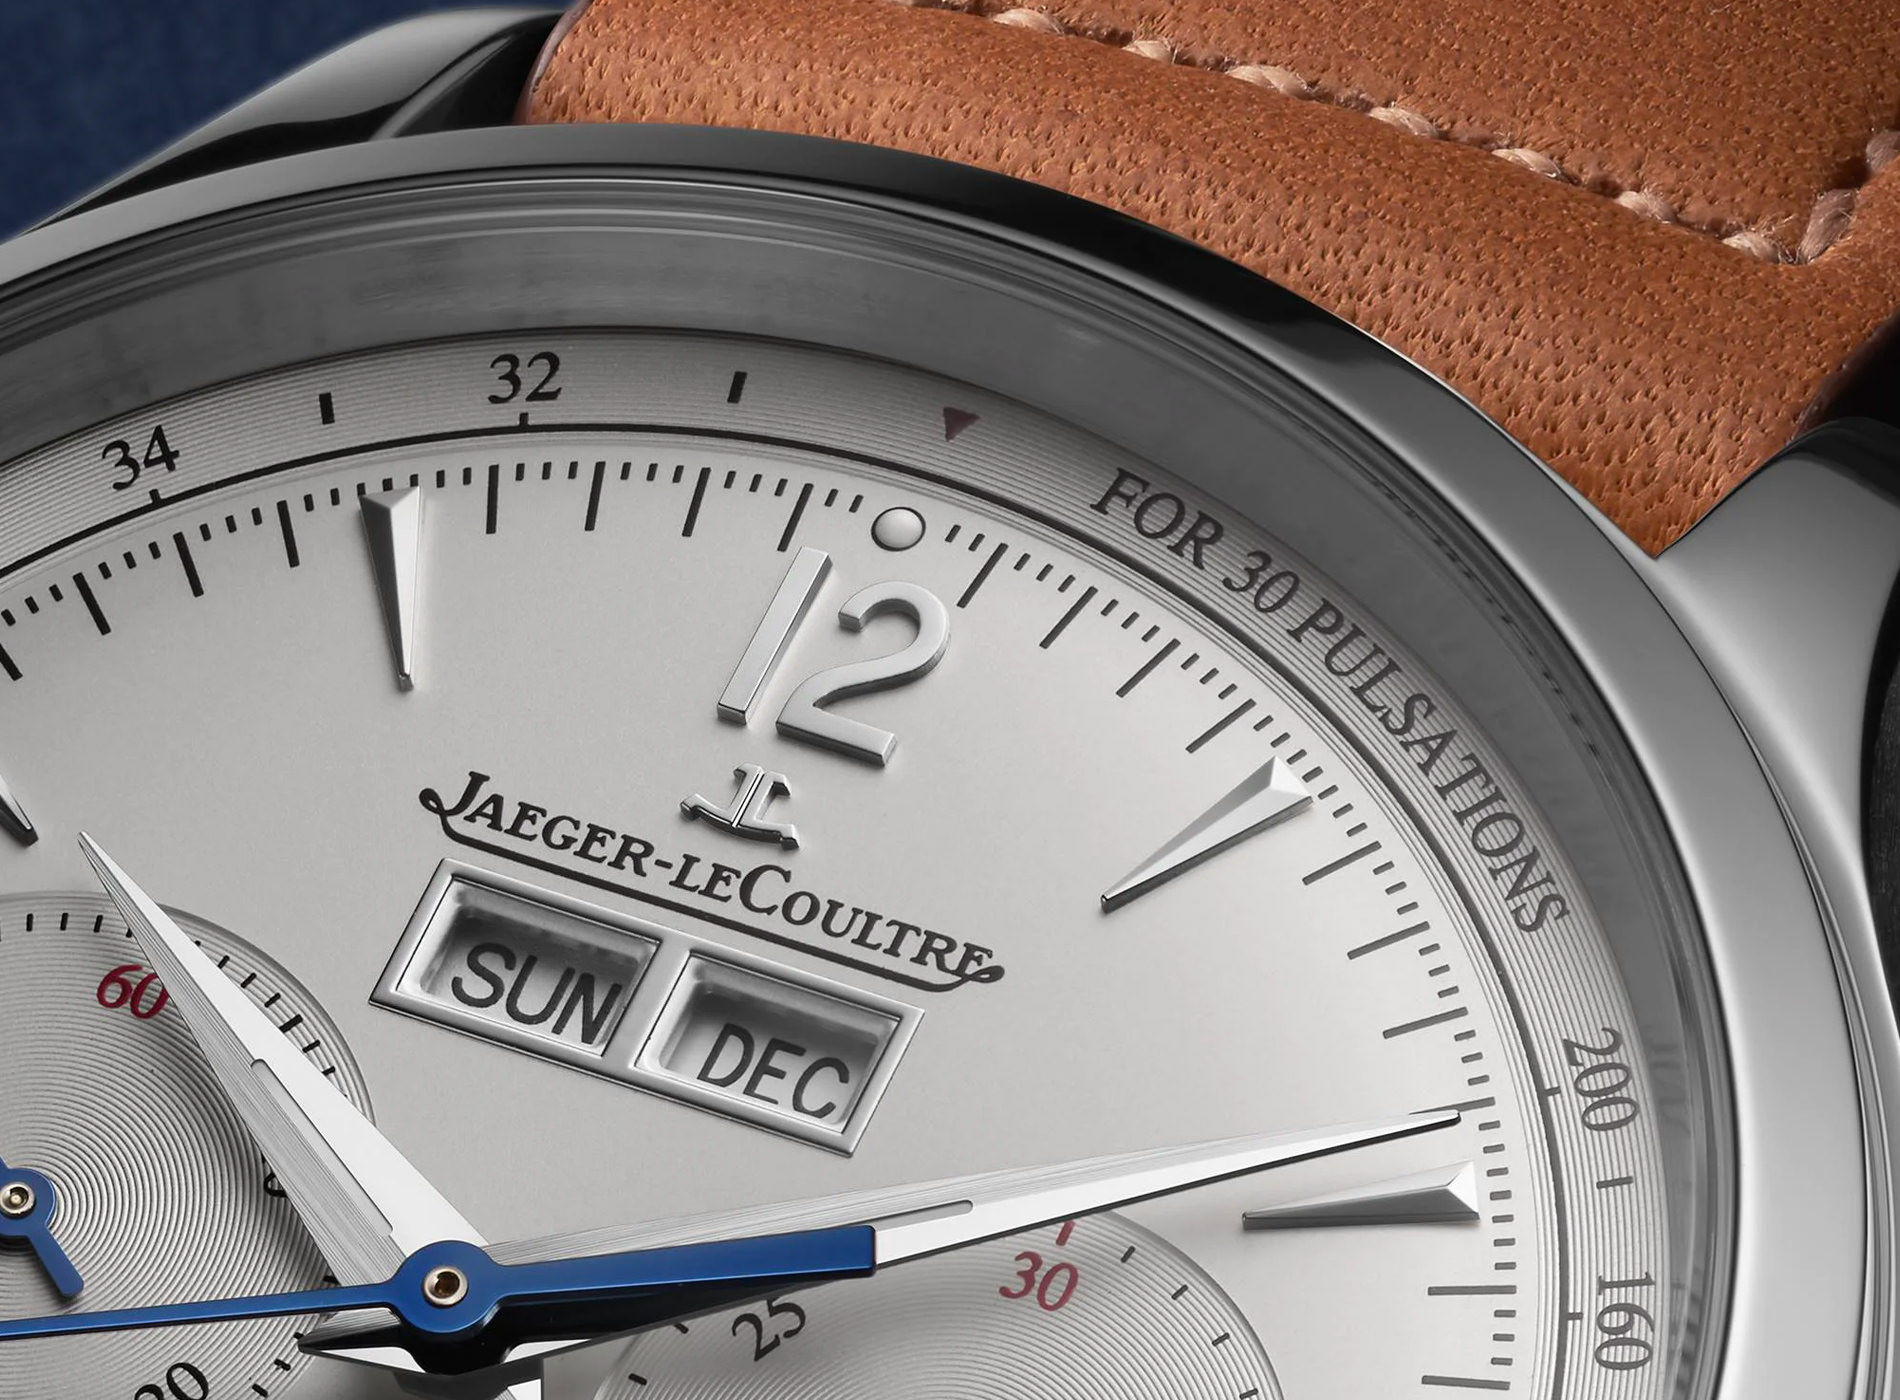 Jaeger-LeCoultre-Master-Control-Chronograph-Calendar-CloseUp-Mood-New-Collection